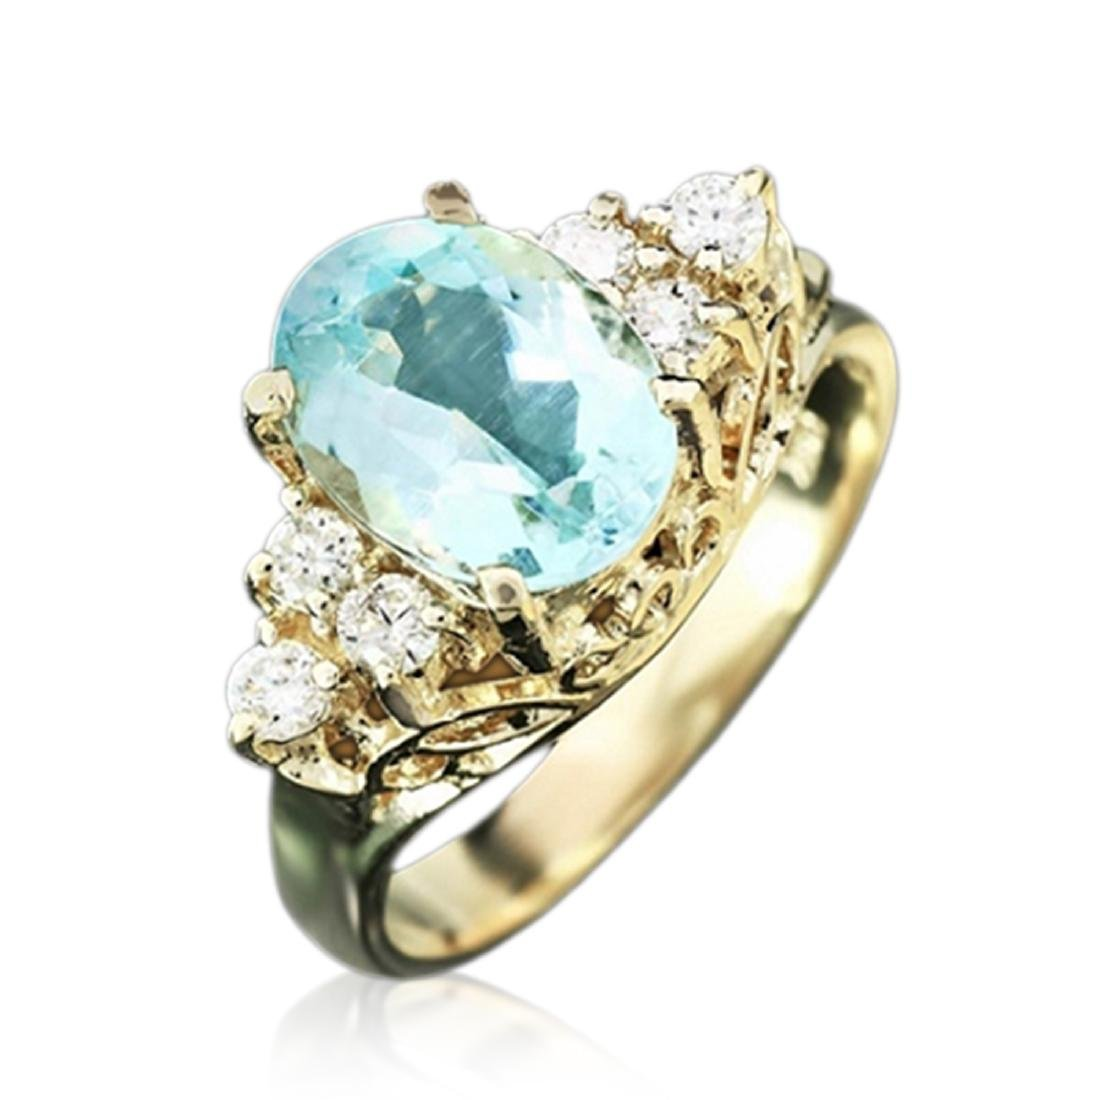 2.30 Carat Natural Aquamarine 18K Solid Yellow Gold